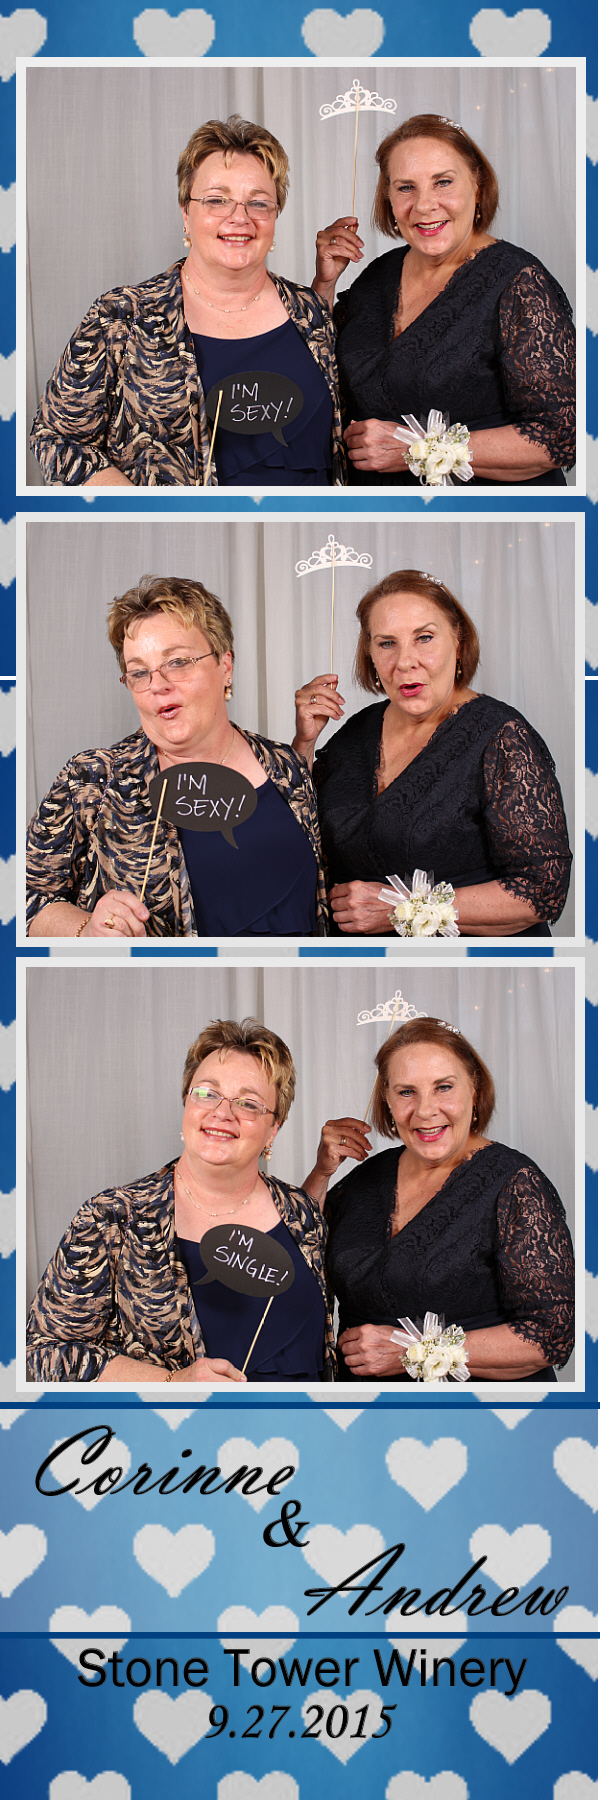 Guest House Events Photo Booth C&A (9).jpg